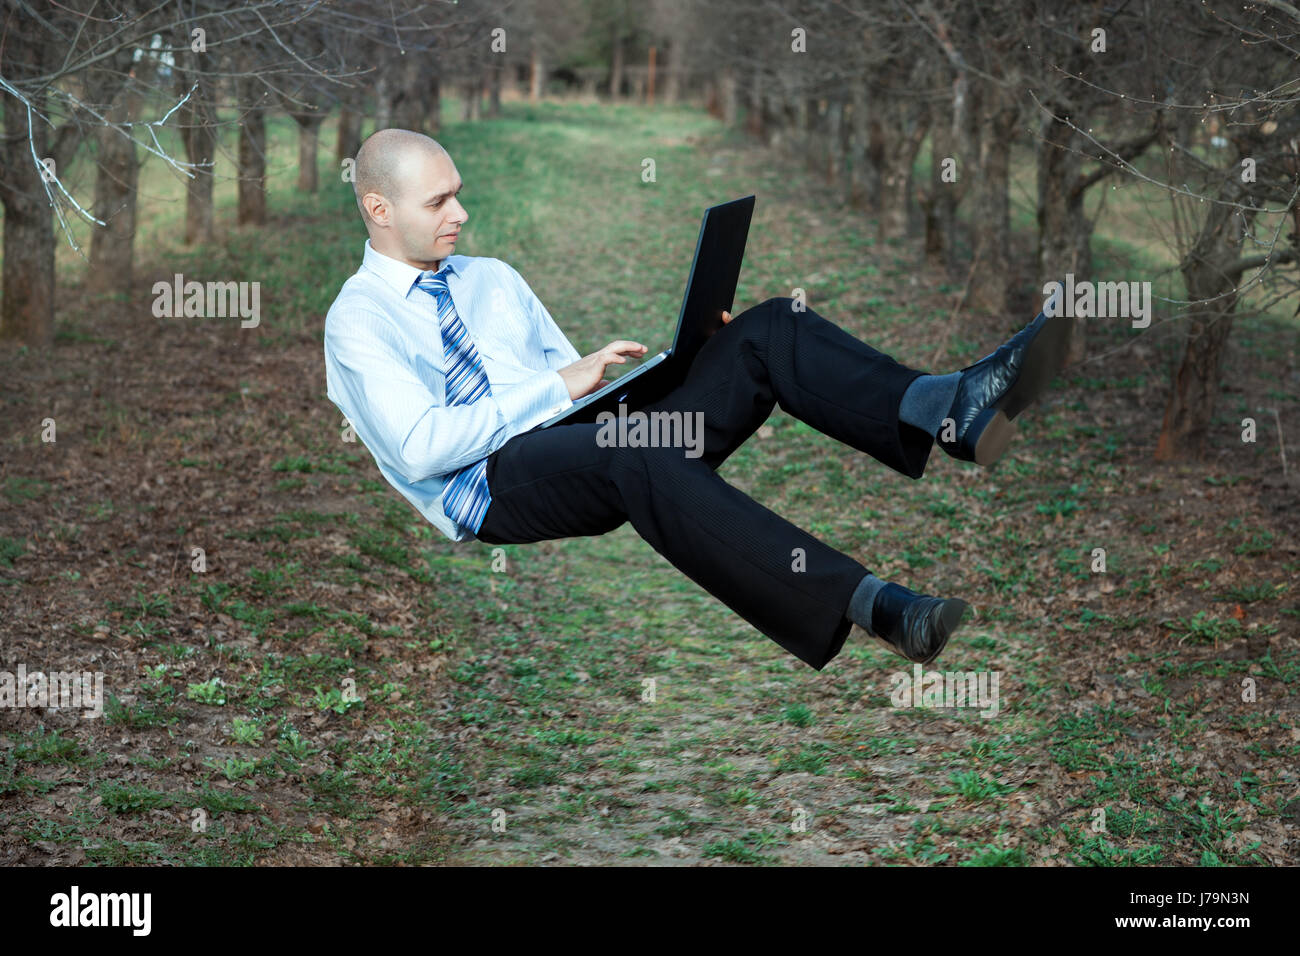 Man flying in the air. In his hands he is holding a laptop. - Stock Image